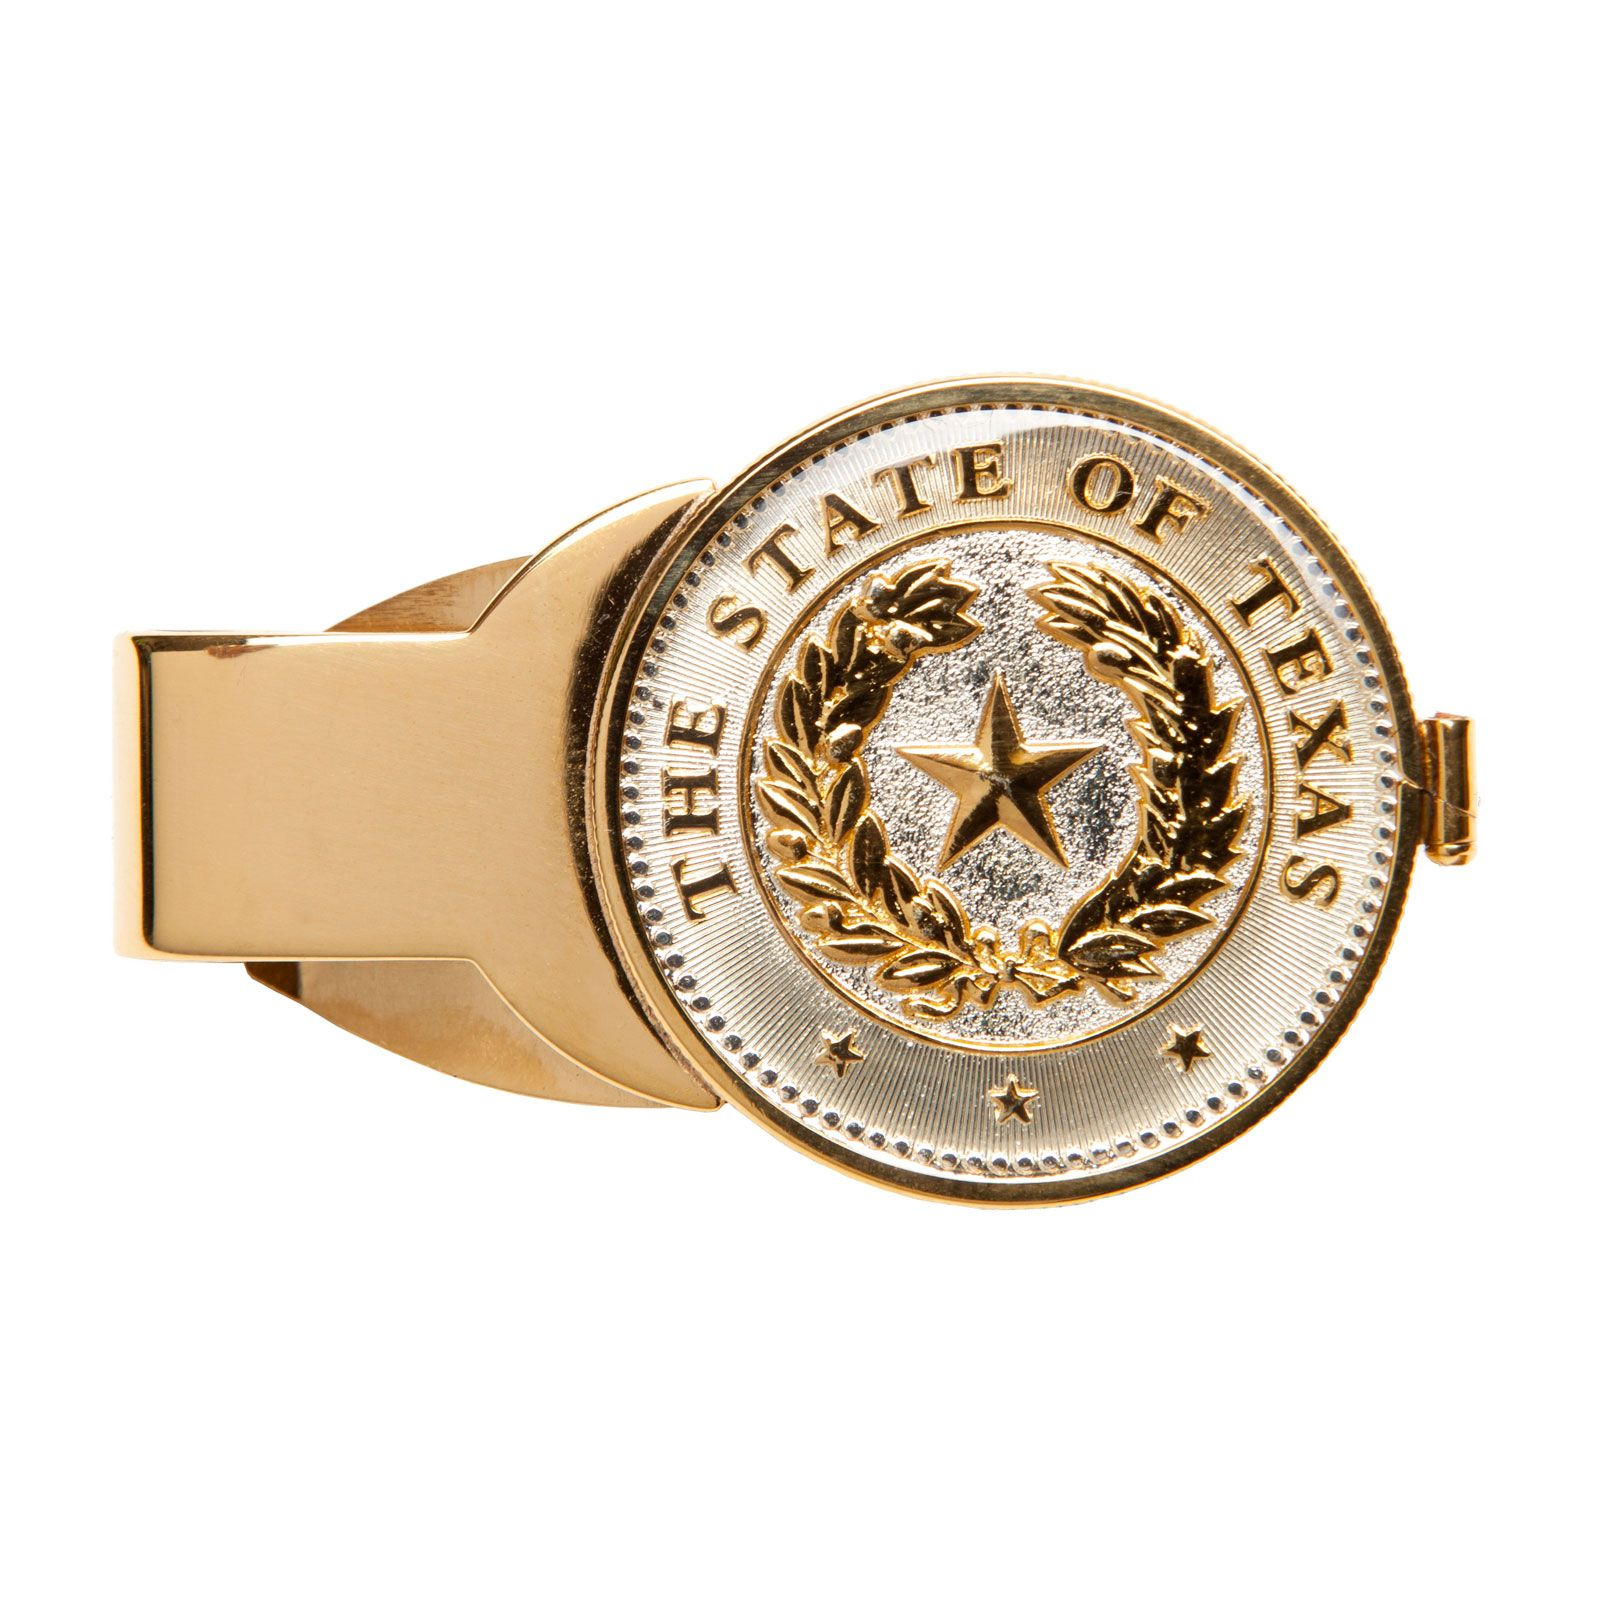 Texas State Seal Gold-Plated Money Clip